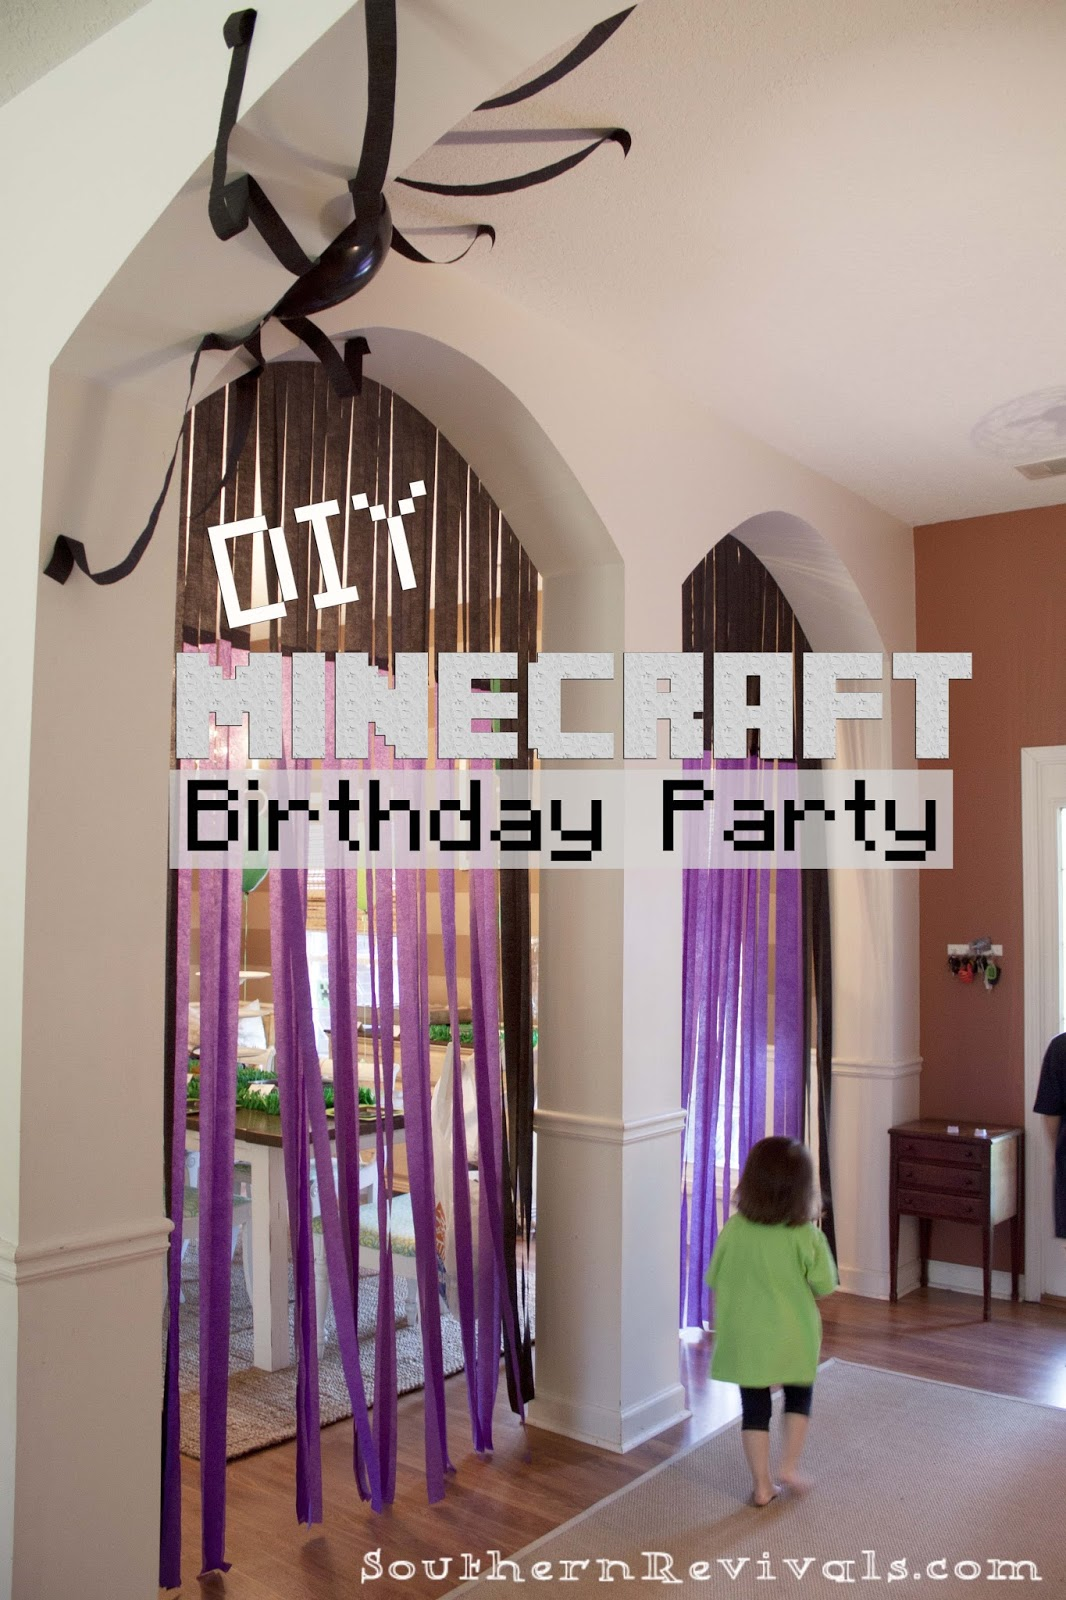 Diy minecraft birthday party craft ideas party favors printables diy minecraft birthday party solutioingenieria Images